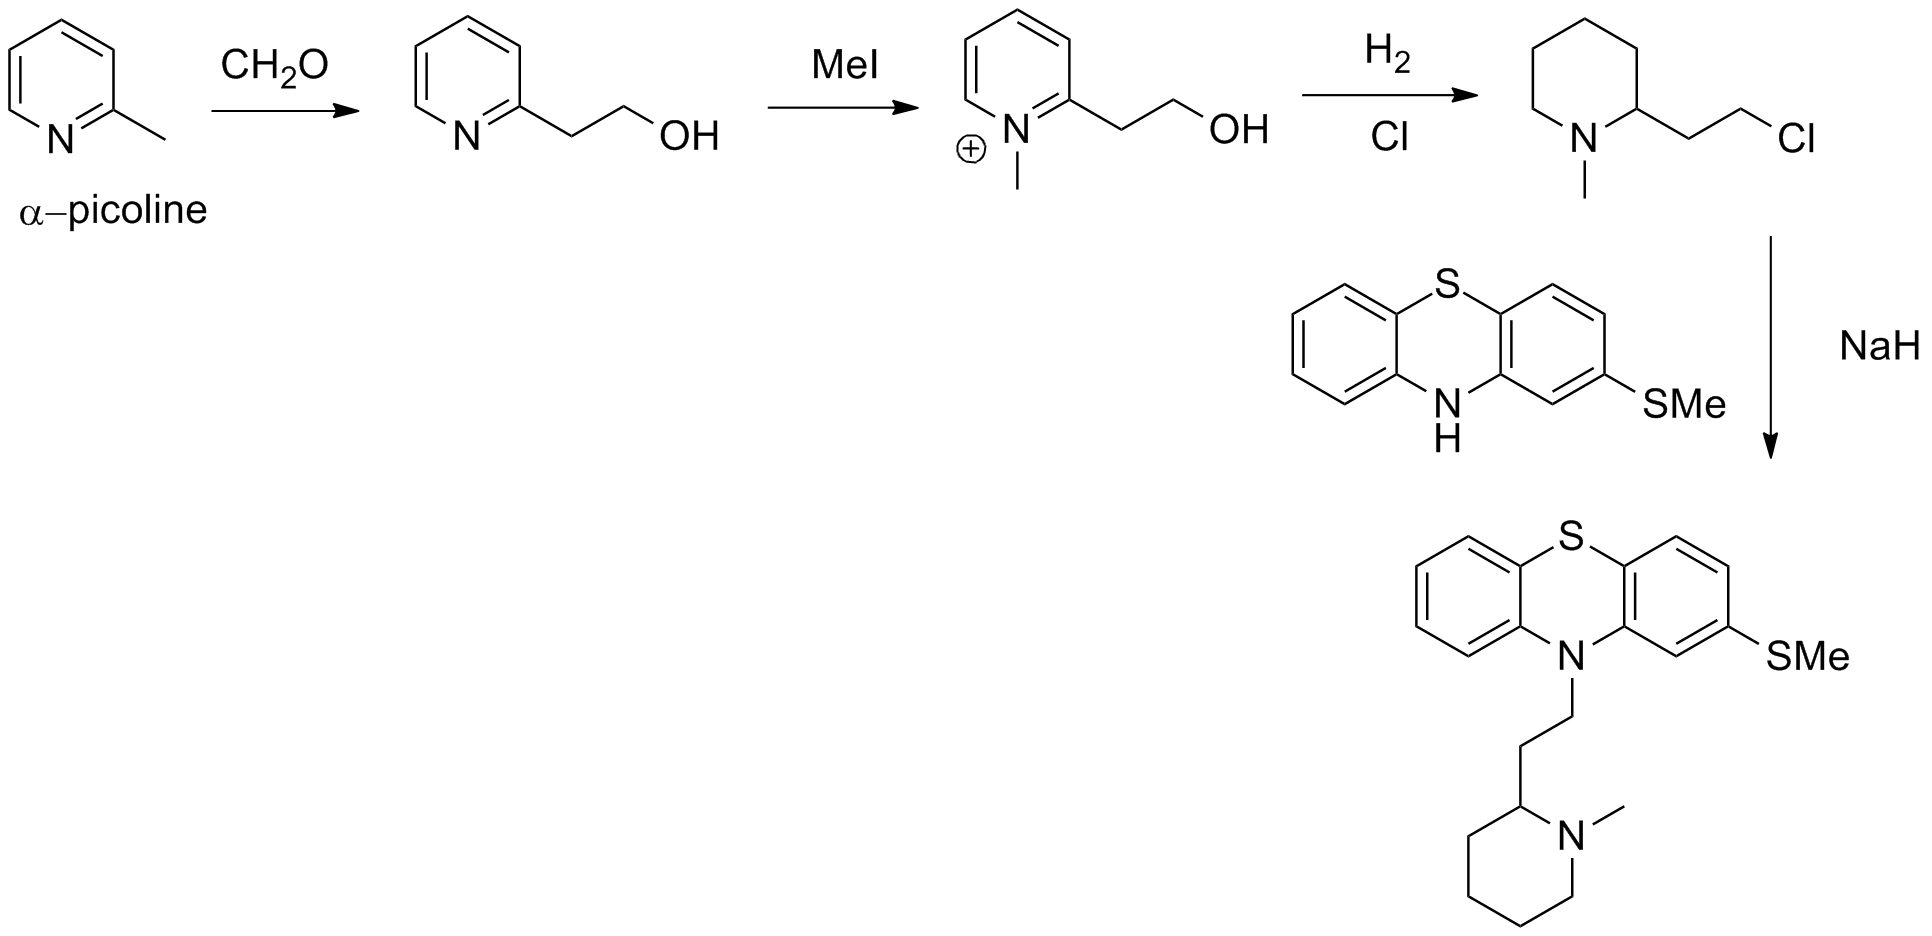 File:Thioridazine synthesis.png - Wikipedia, the free encyclopedia